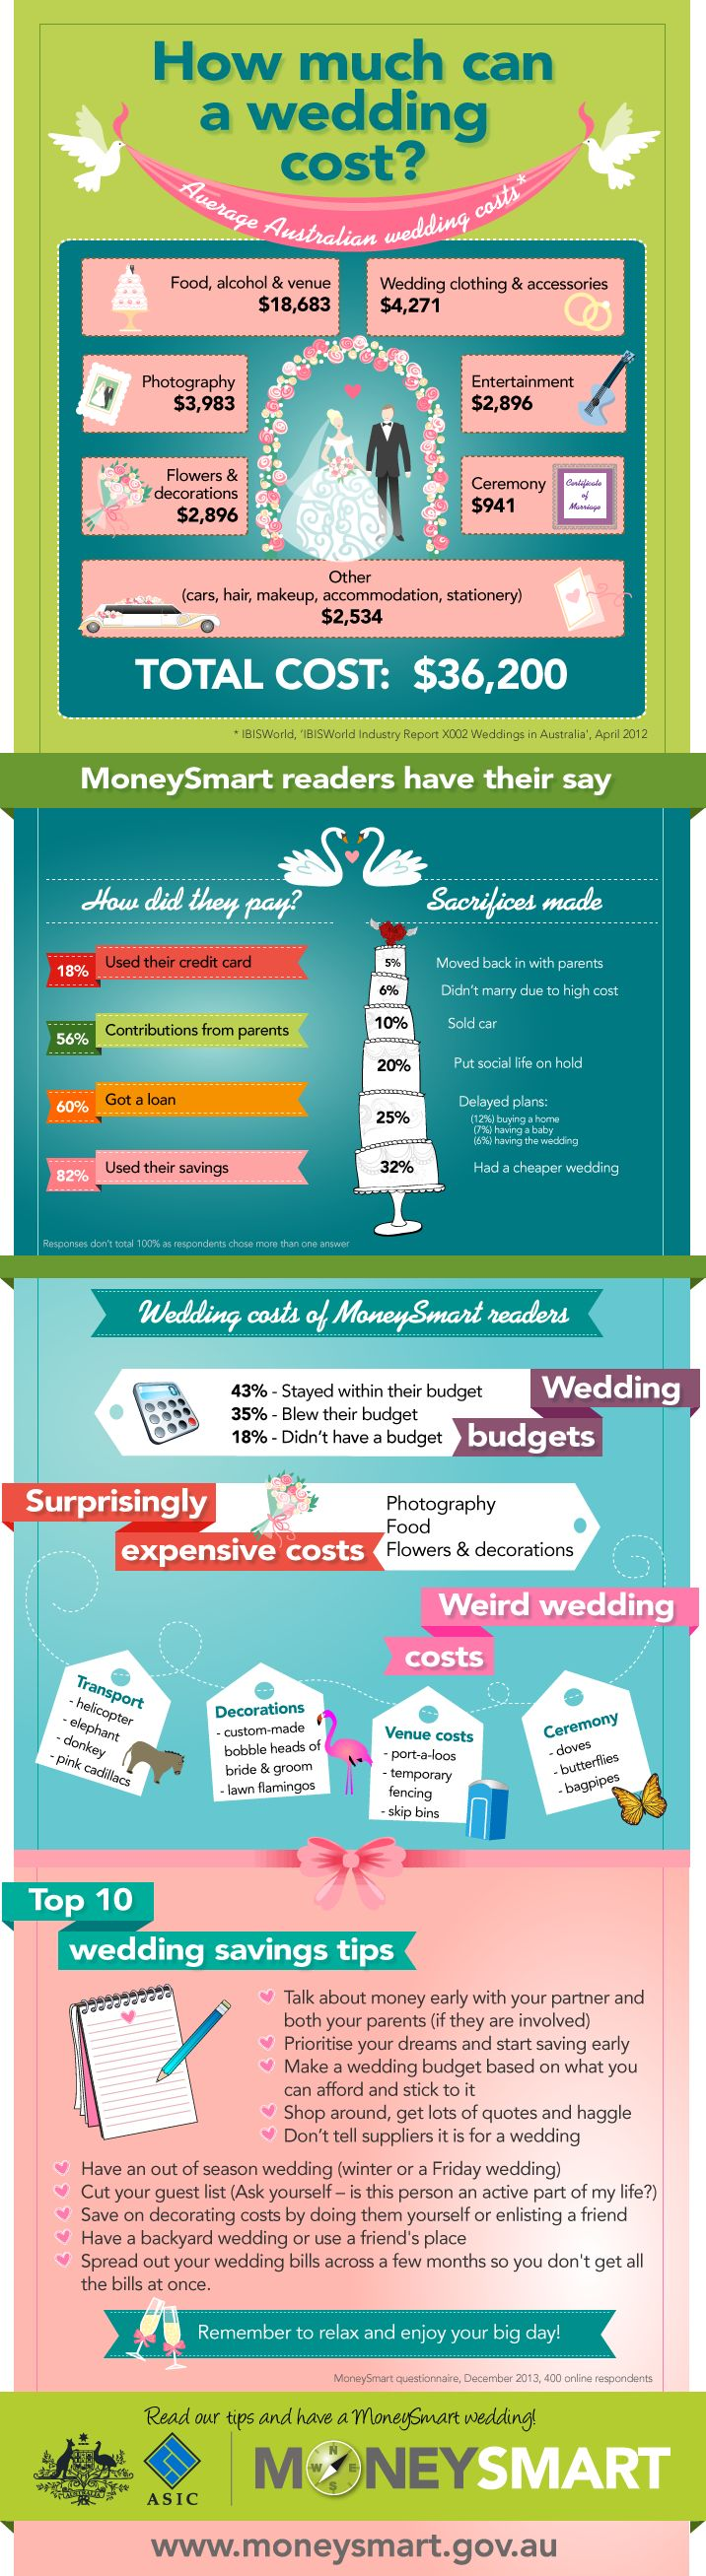 The Average Australian Wedding Costs $36,200 [Infographic] | Lifehacker Australia